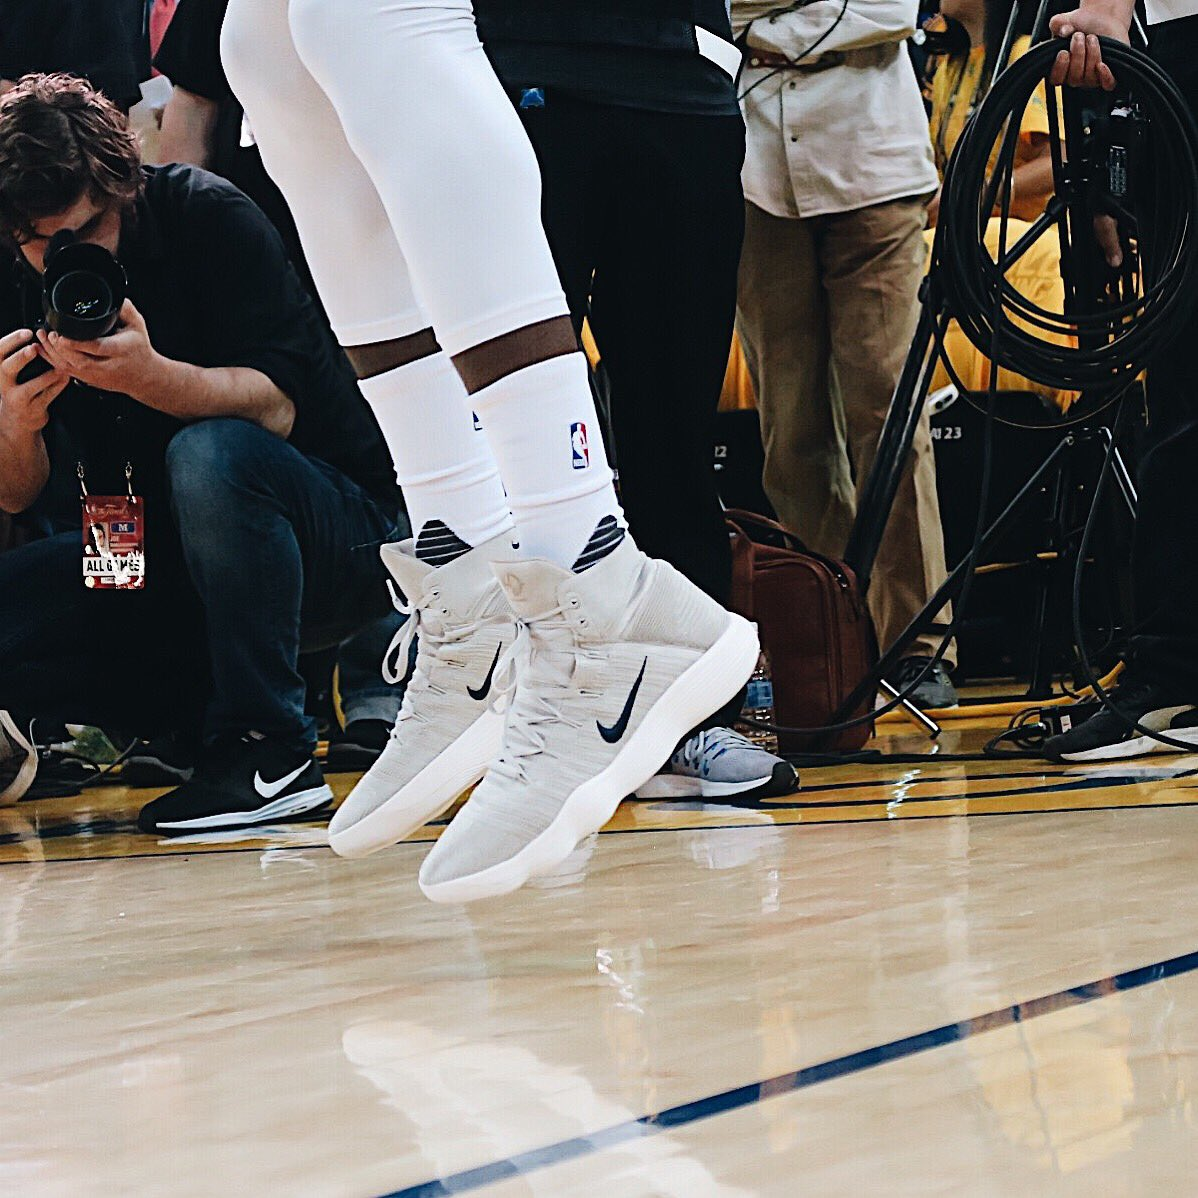 ff1f177bd8c closer look at draymond green s nike hyperdunk 2017 live at game 1 of the  📸